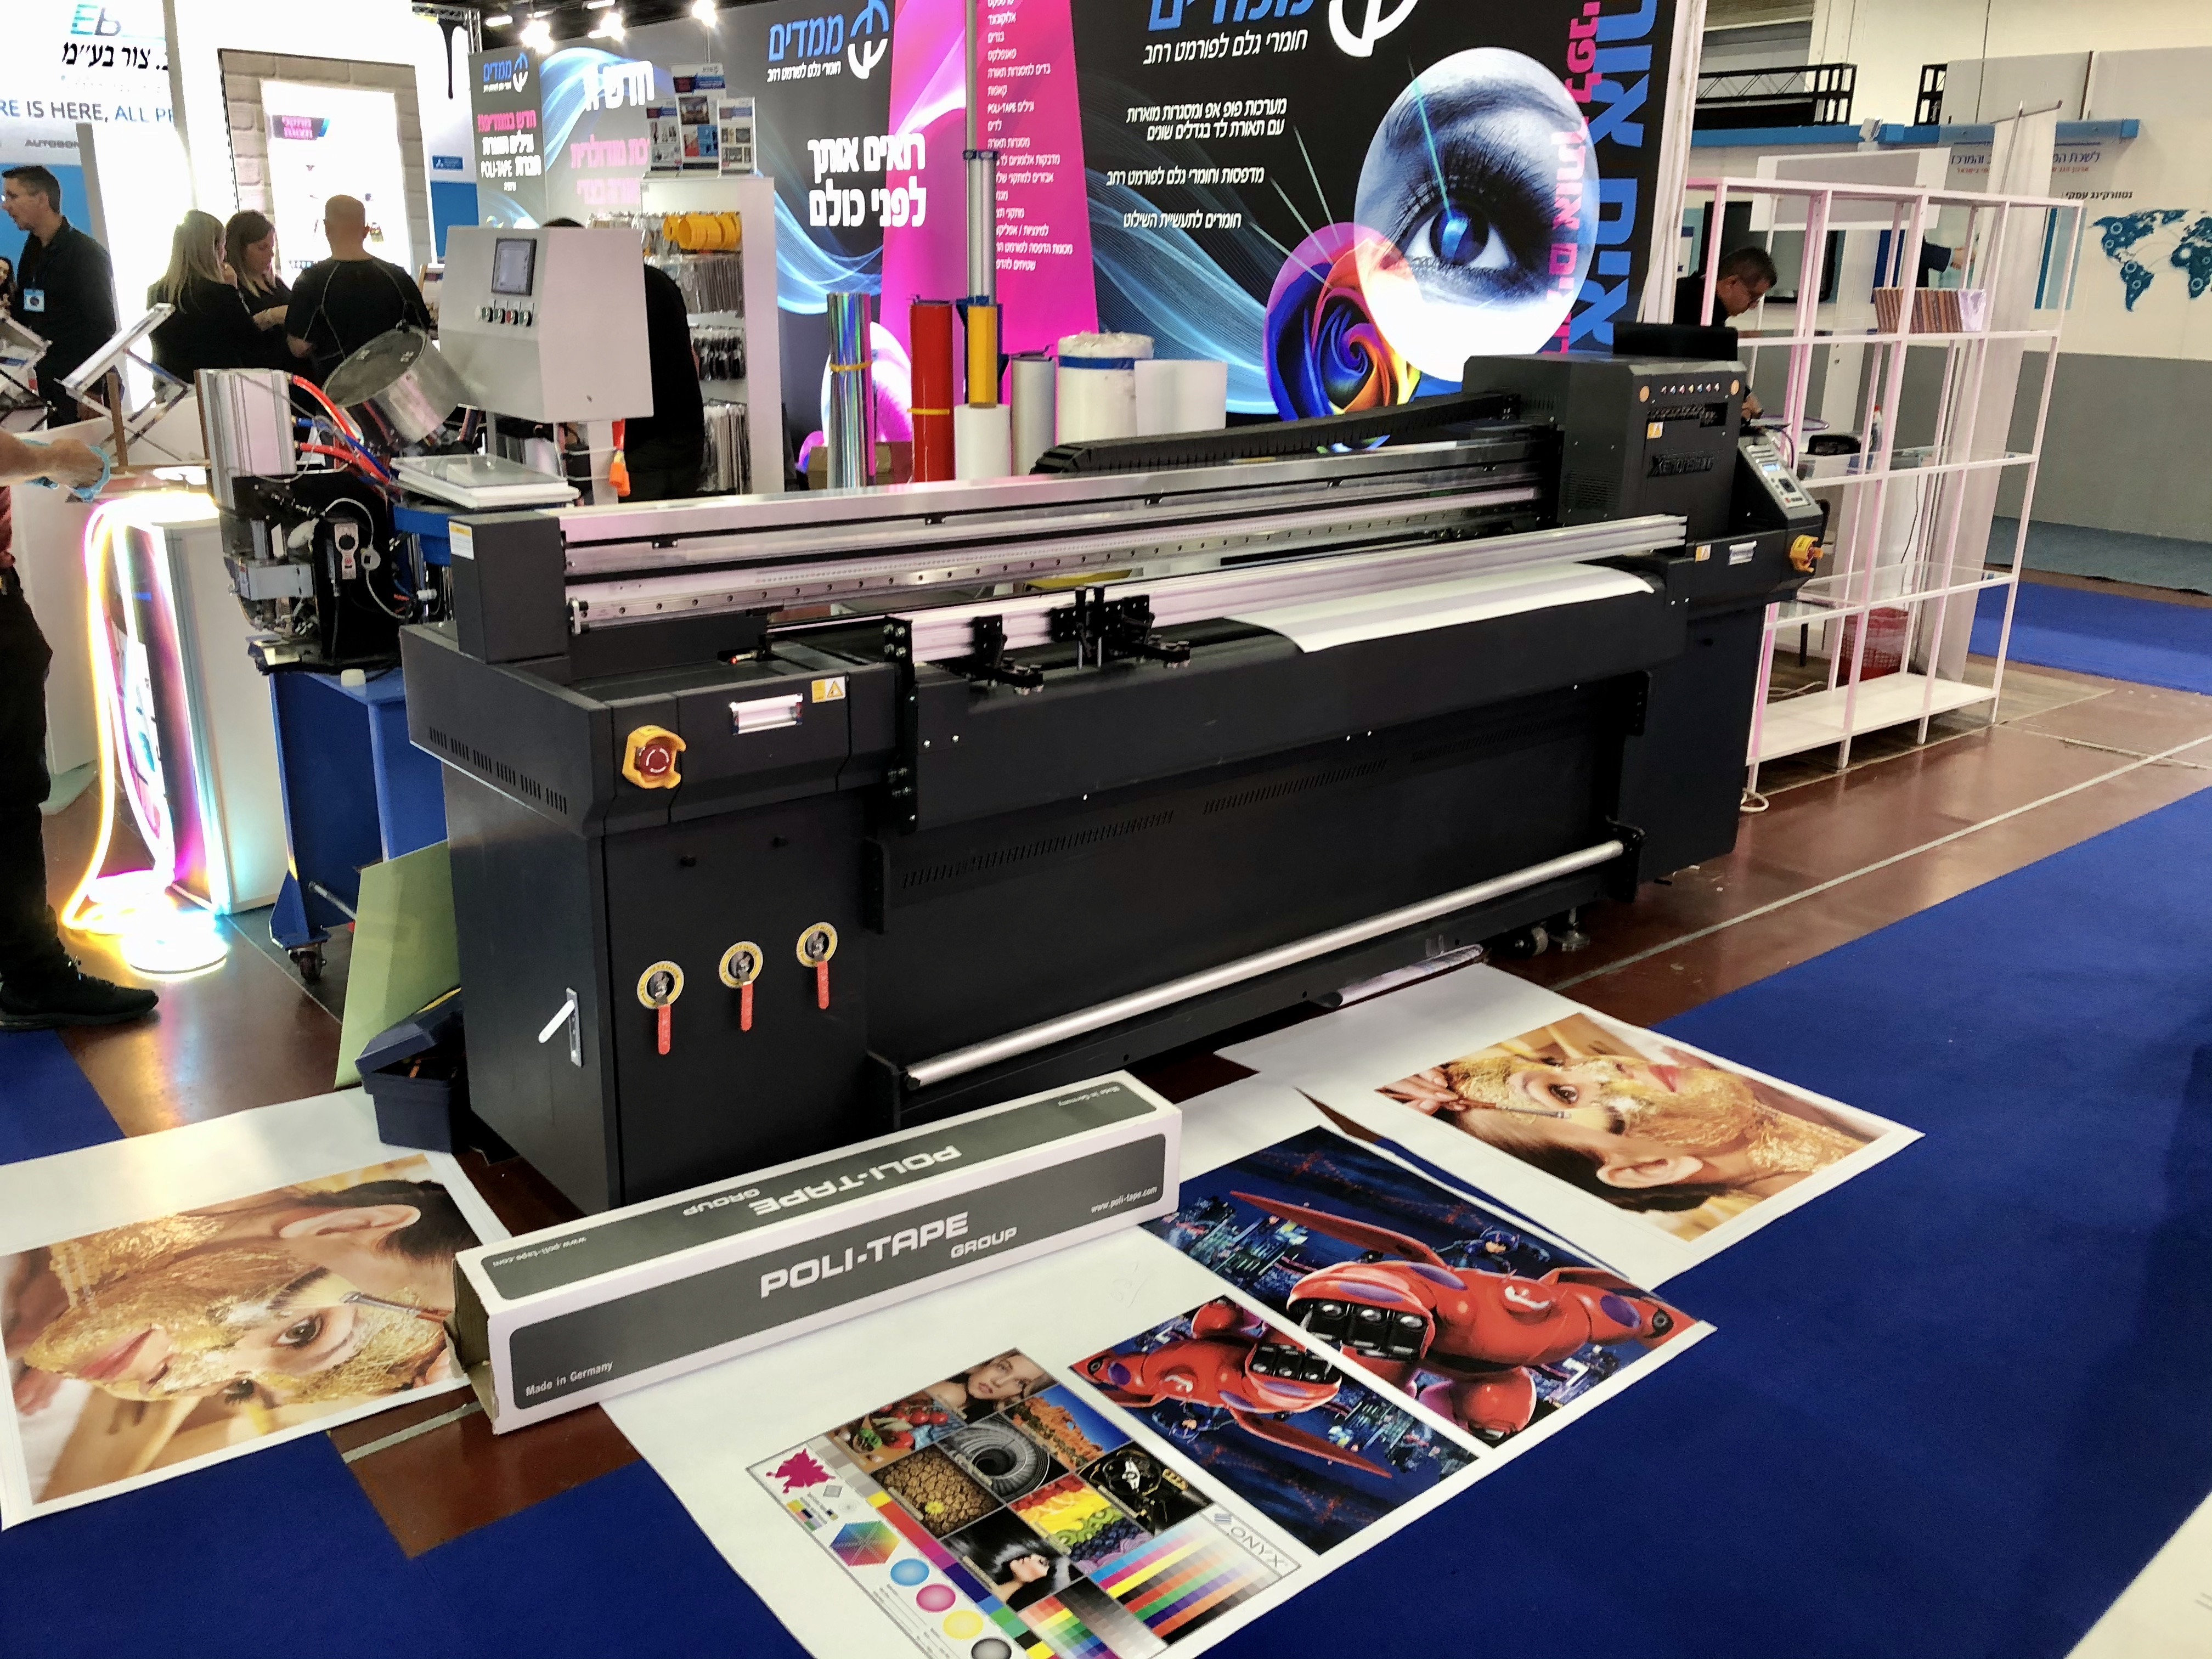 IsPrint 2019, The Exhibition for Printing, Digital Printing, Signage and Printed Surfaces, October 29-31, 2019, Israel Trade Fairs & Convention Center, Tel Aviv